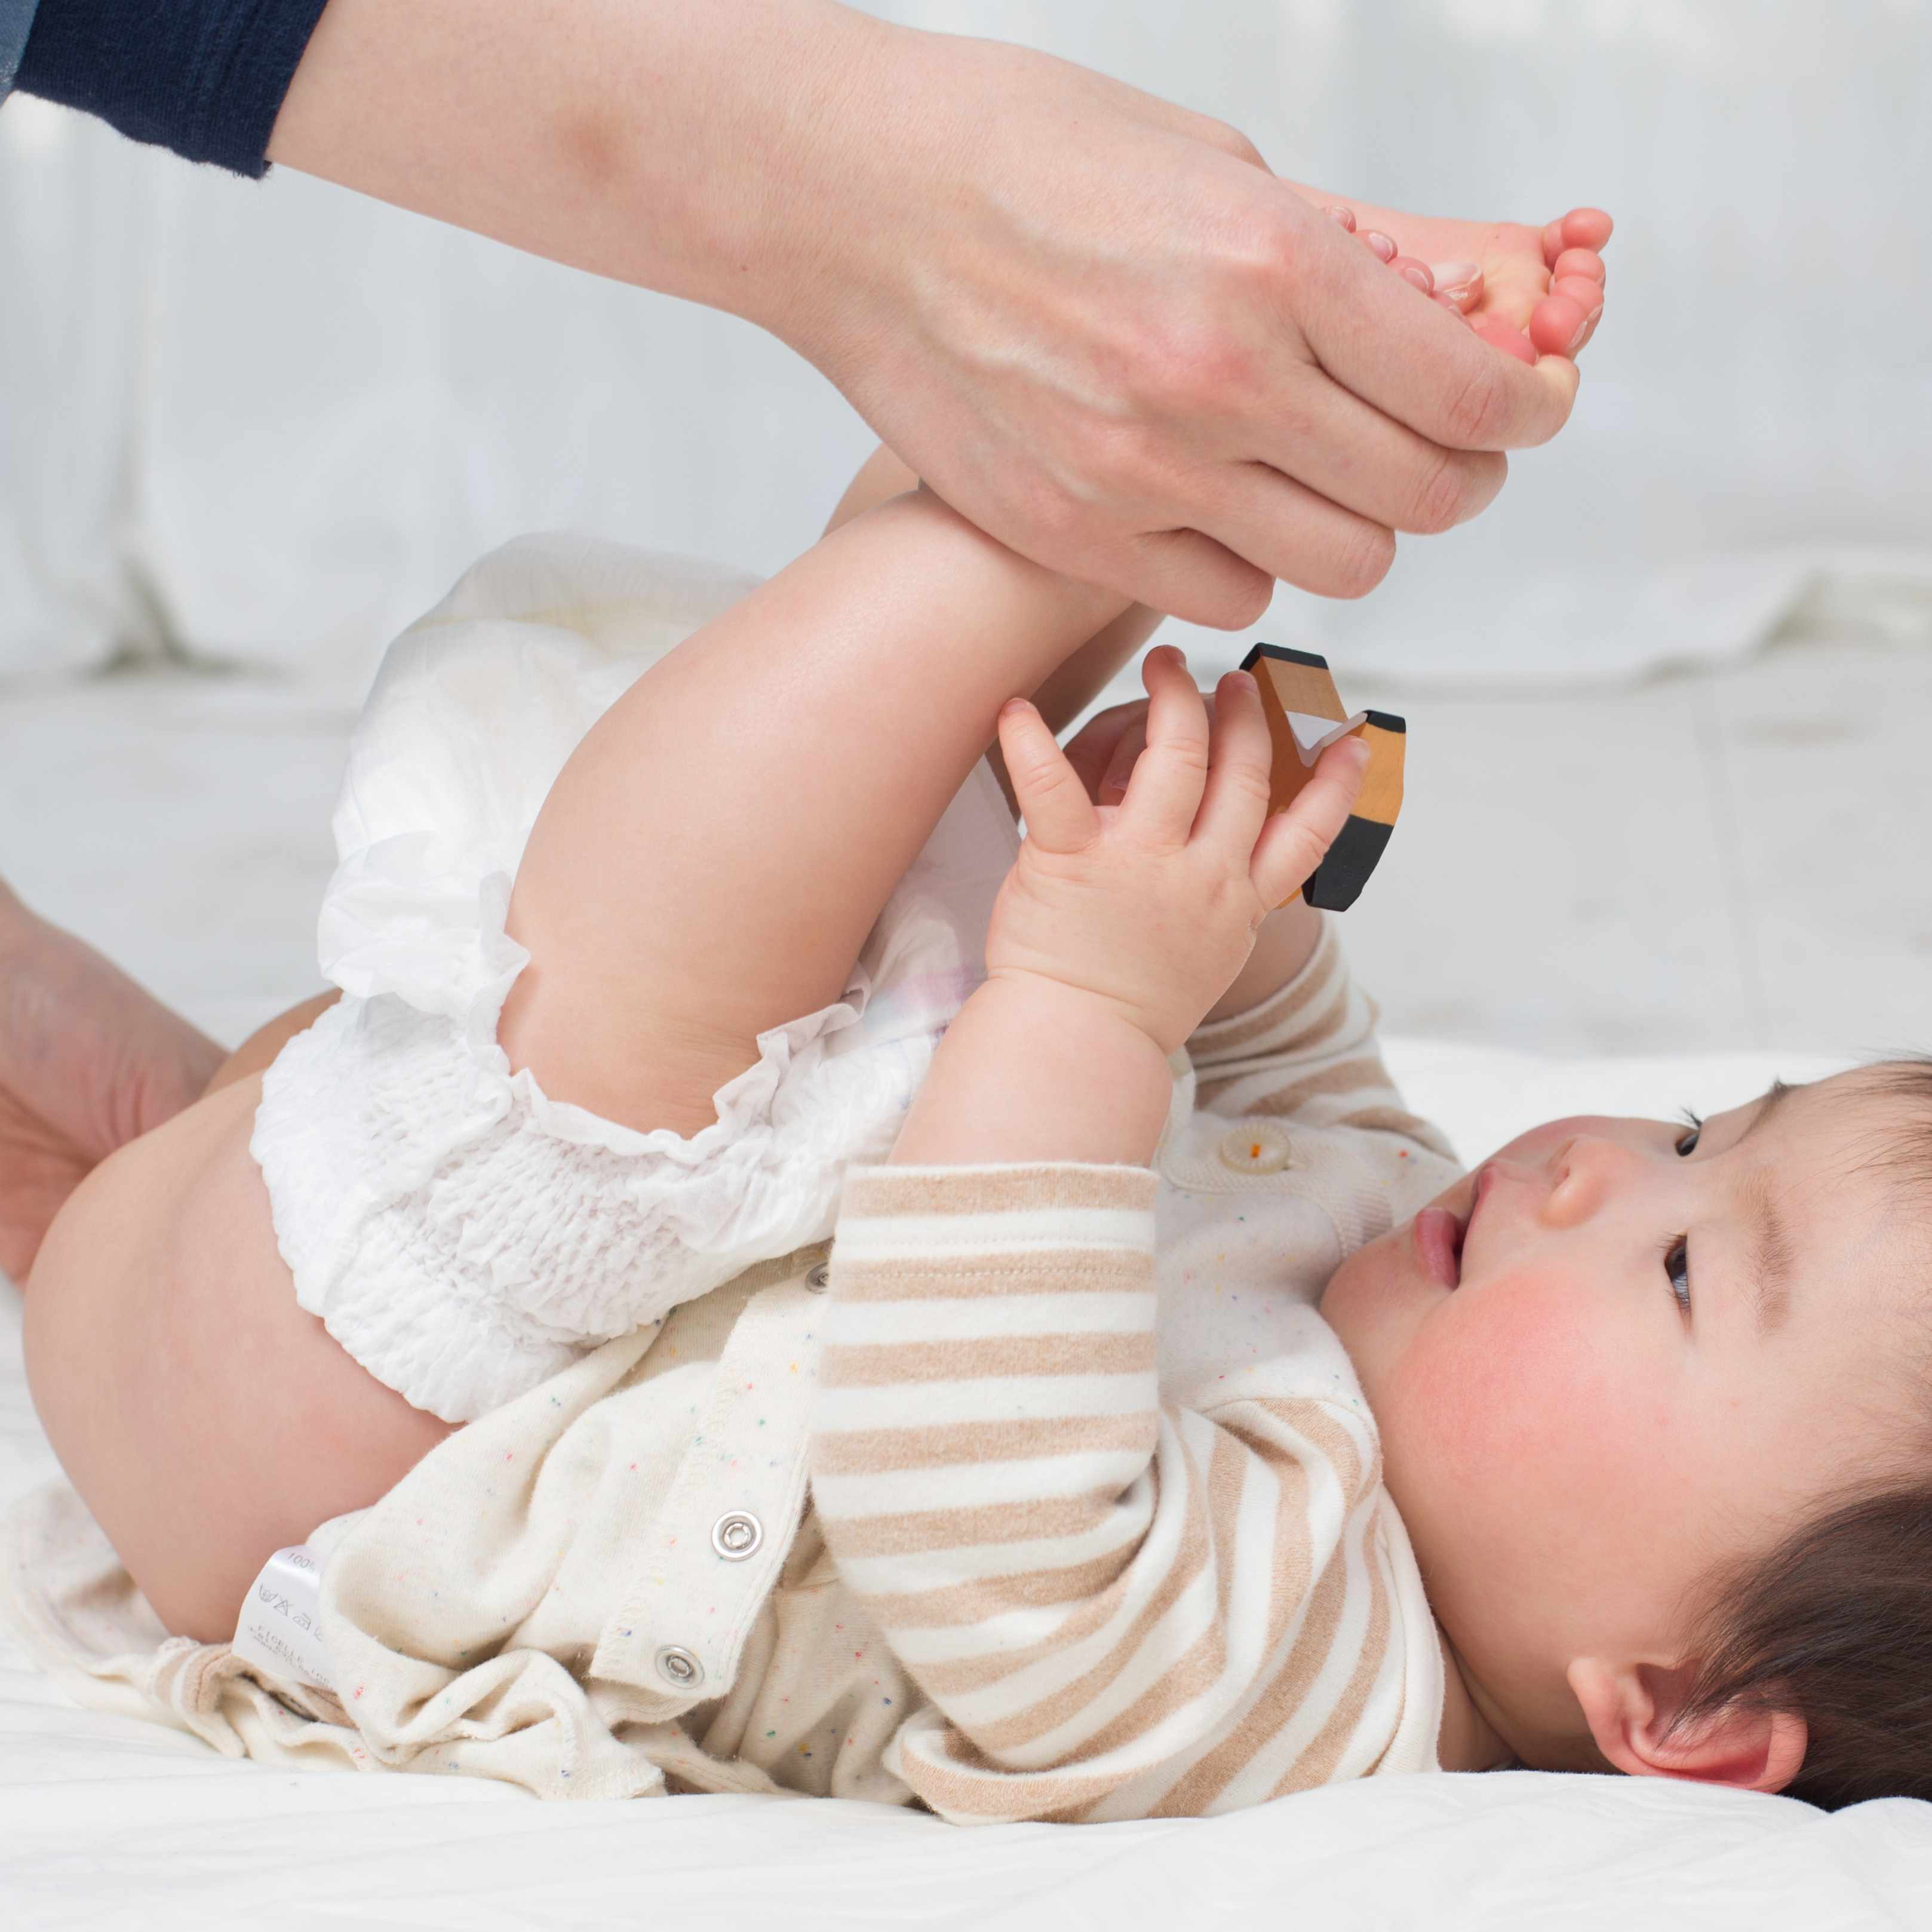 baby on a table having diaper changed